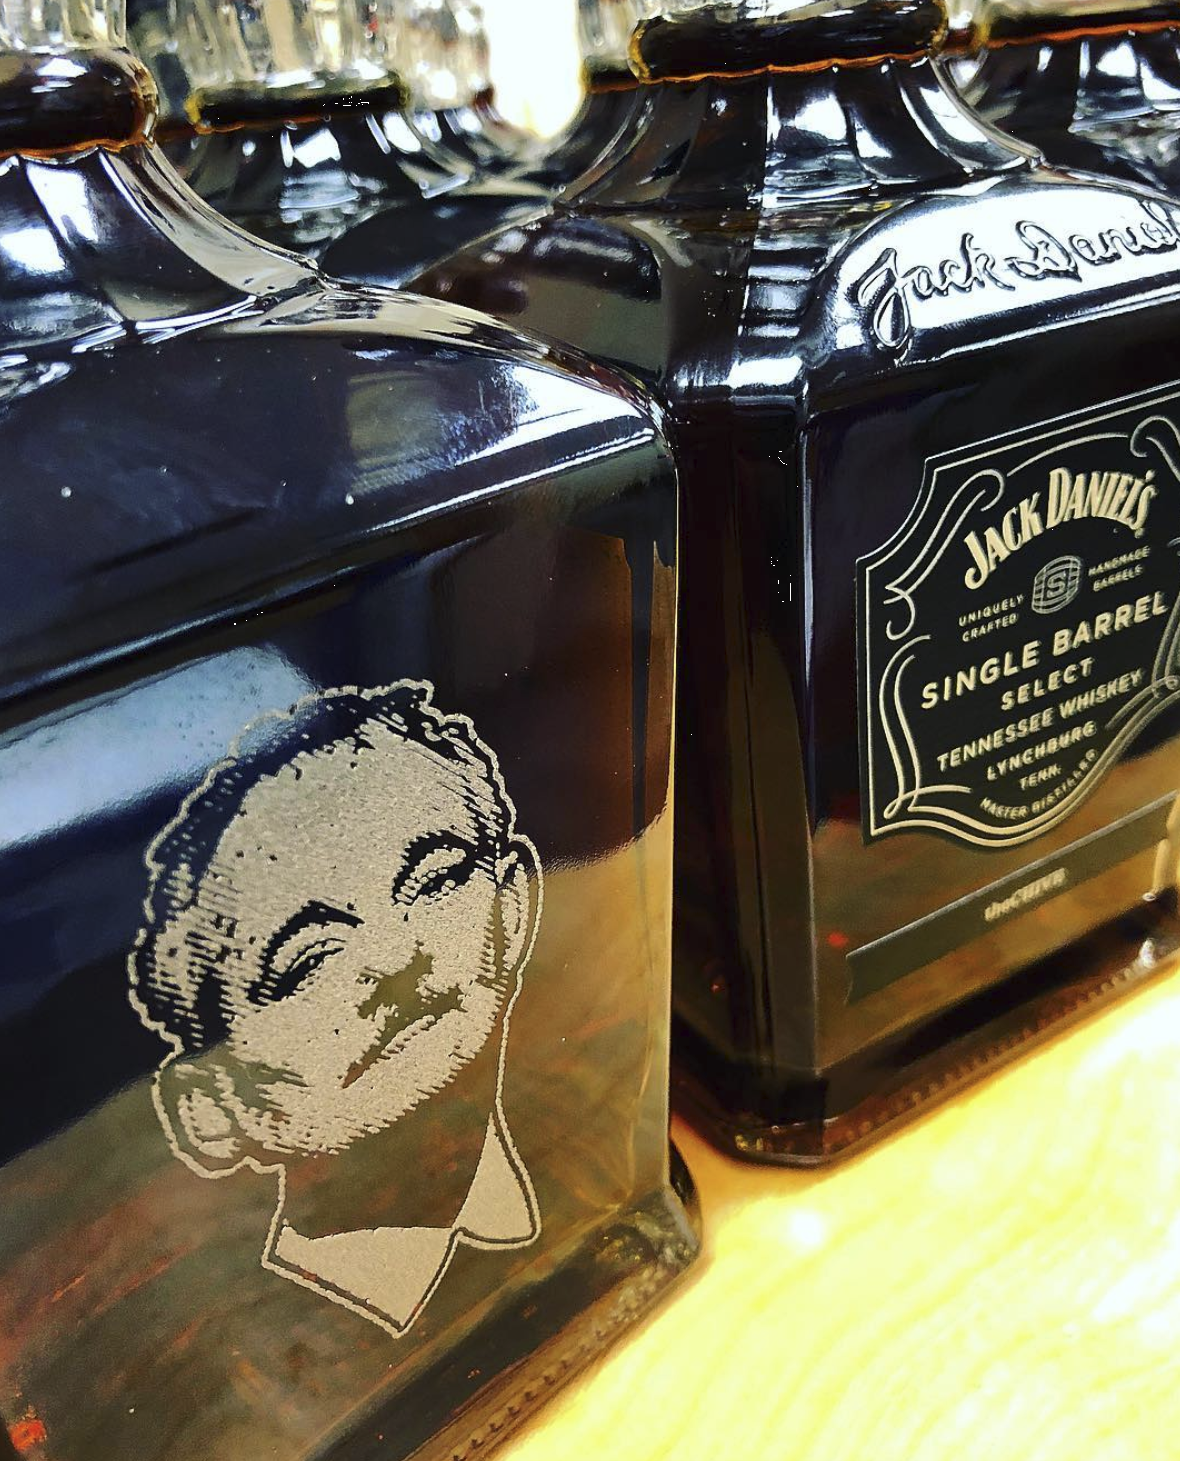 For the Chive we laser engraved the BFM logo on one side of the Jack Daniels bottle and their logo on the opposing side.